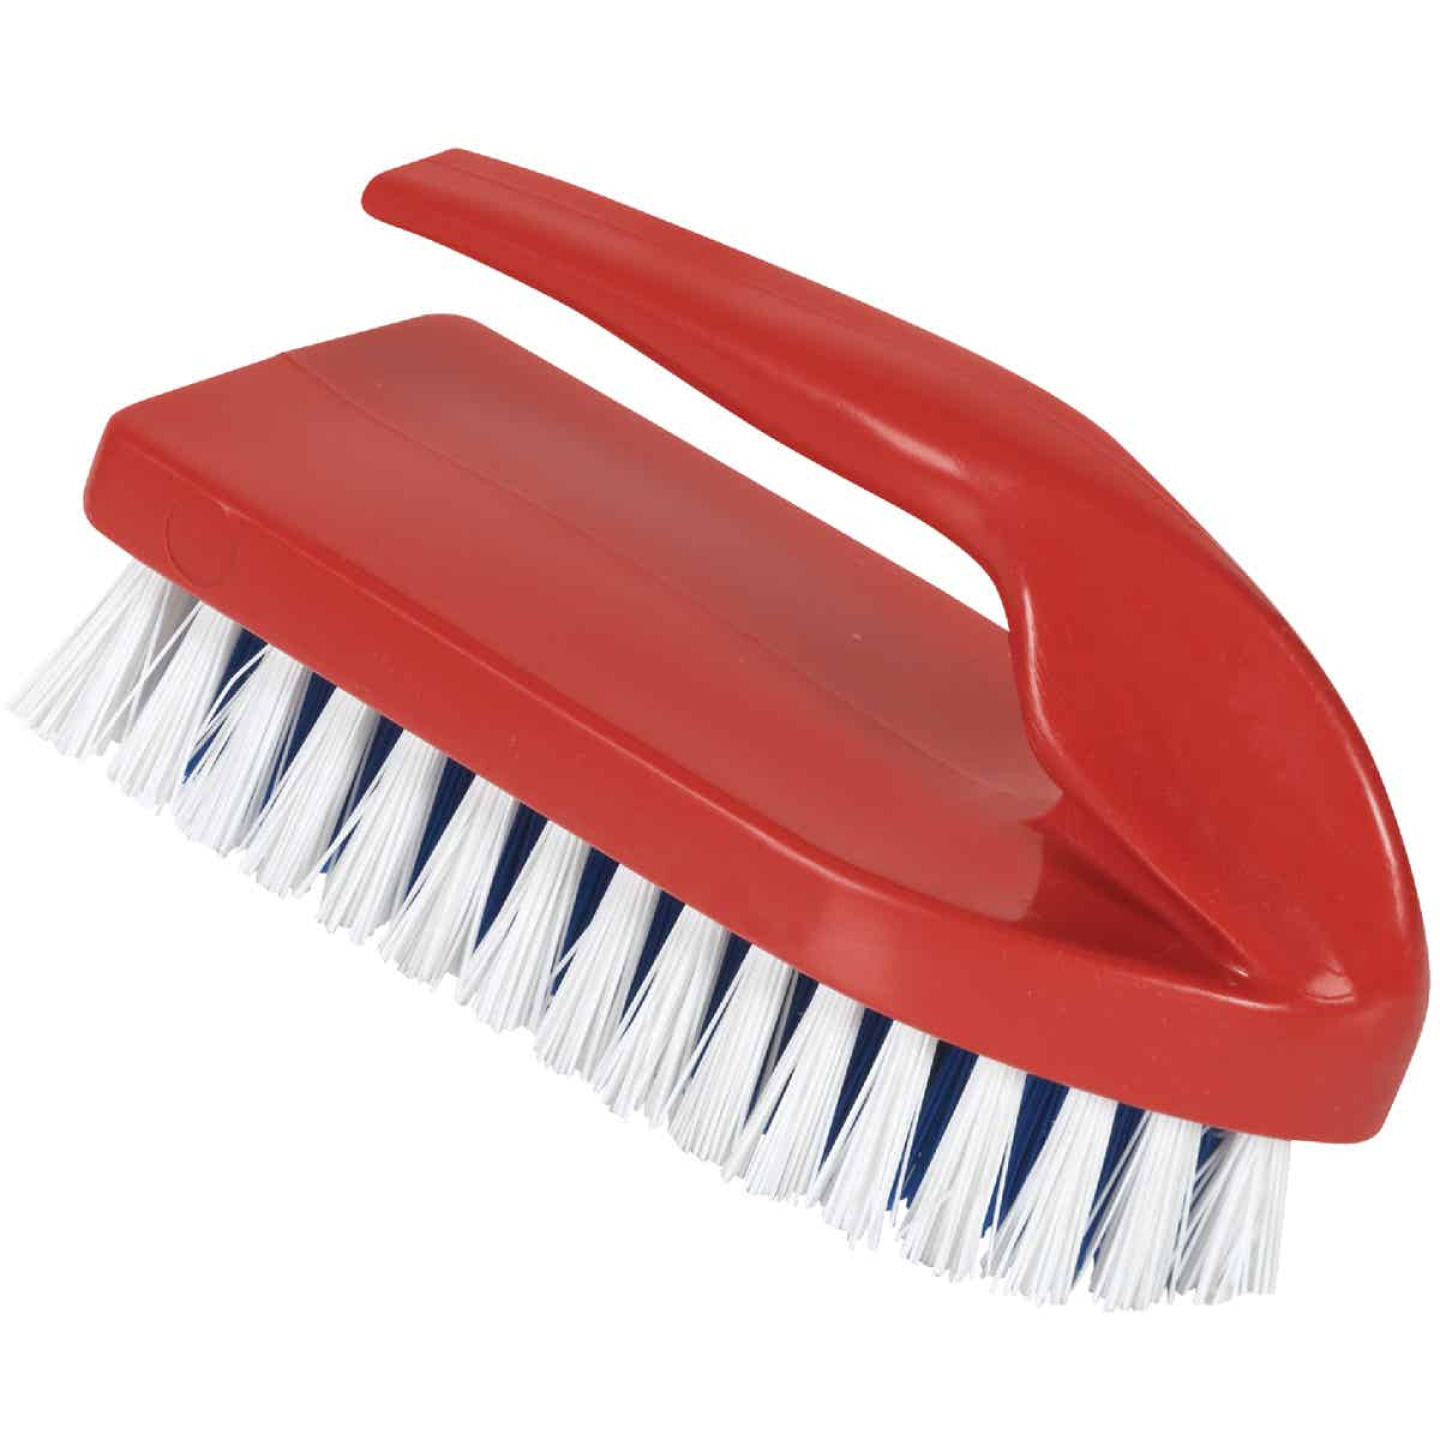 Decker Synthetic Bristles 1 In. Trim Size Grooming Brush with Handle Image 1